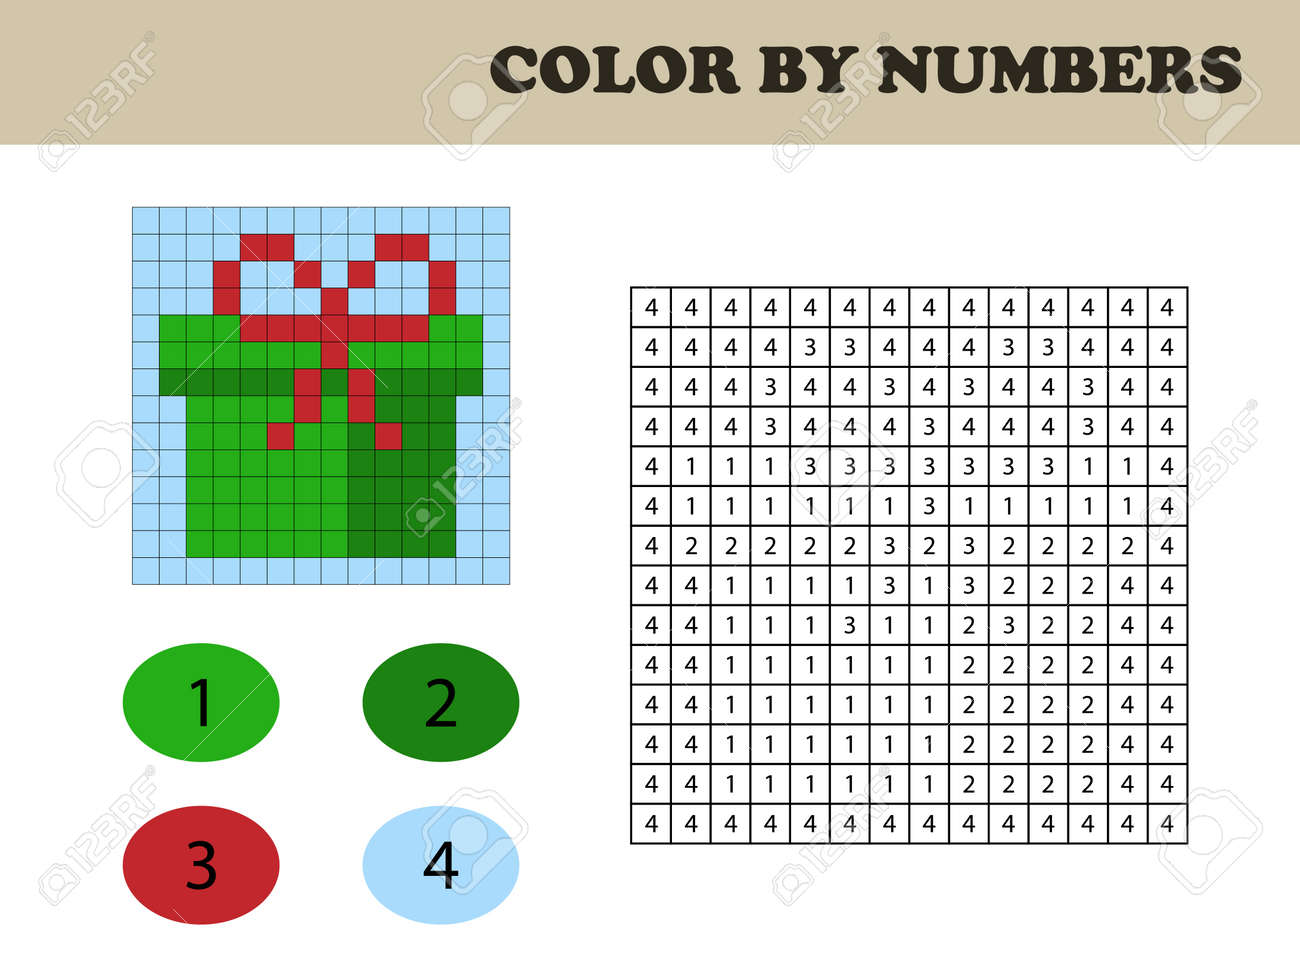 Color By Numbers Education Game For Children Coloring Book Royalty Free Cliparts Vectors And Stock Illustration Image 106968225